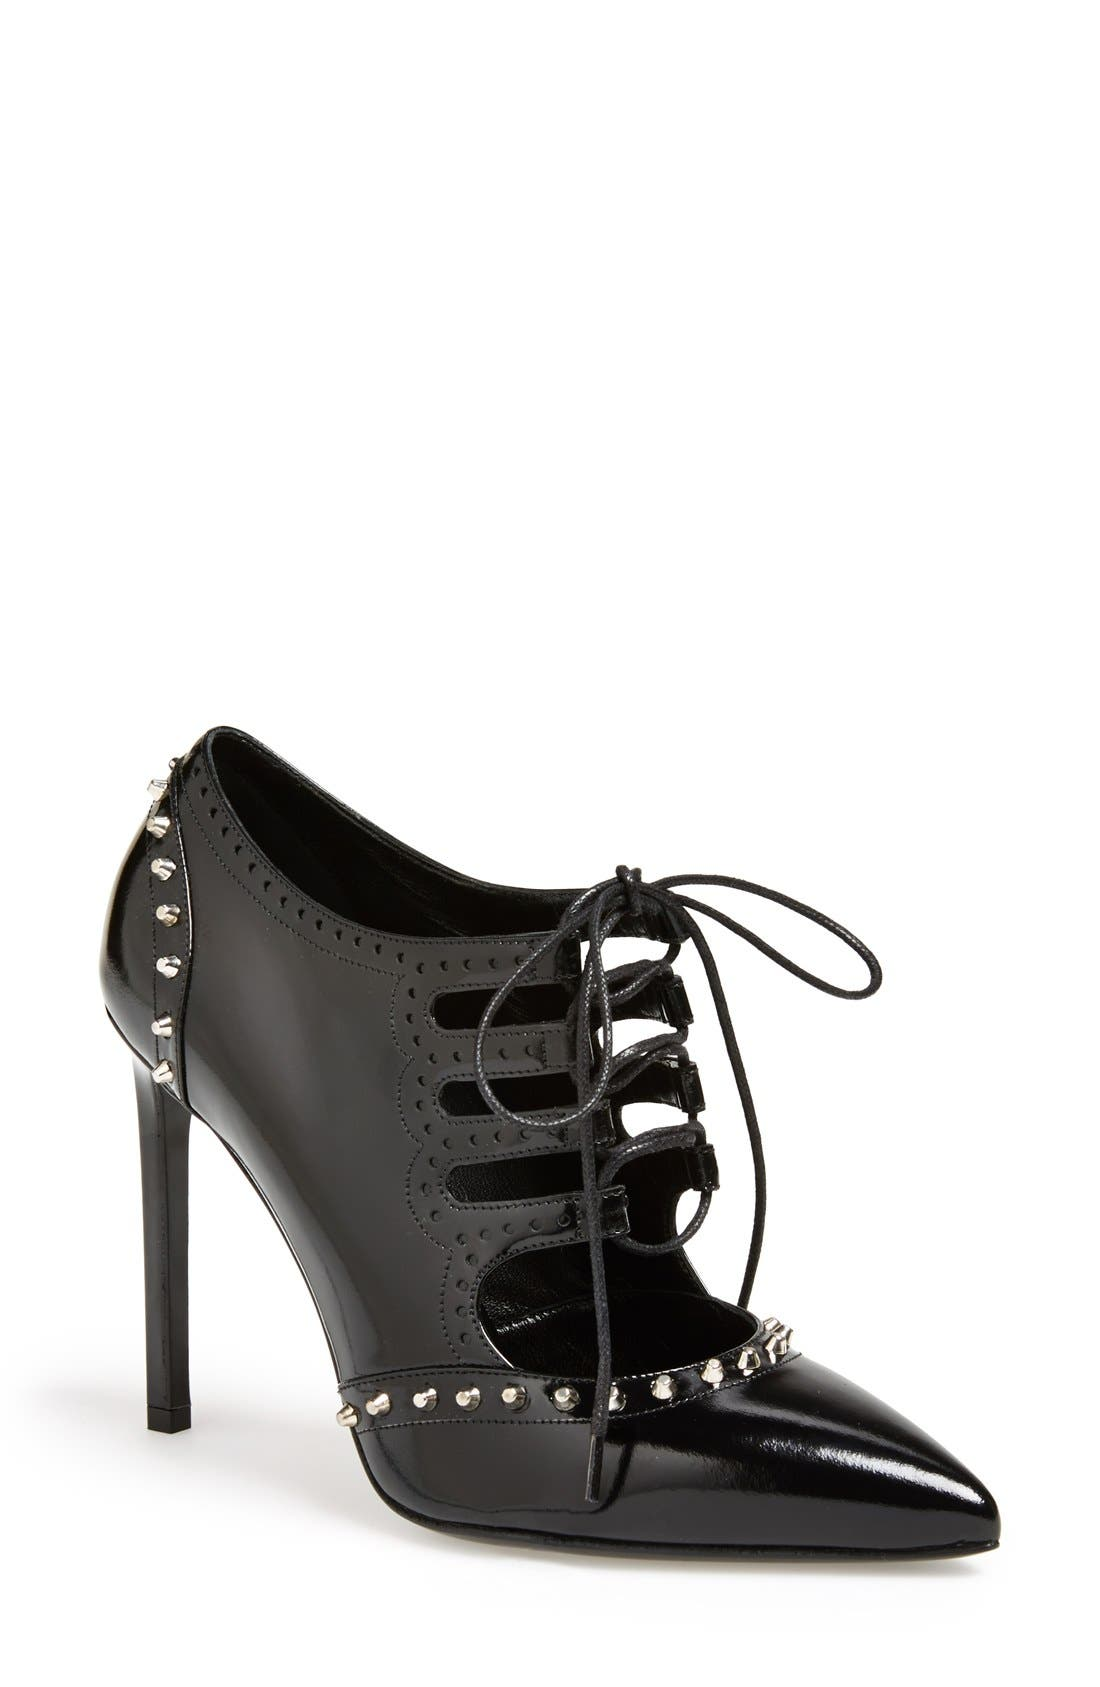 Alternate Image 1 Selected - Saint Laurent Lace-Up Pointed Toe Bootie (Women)